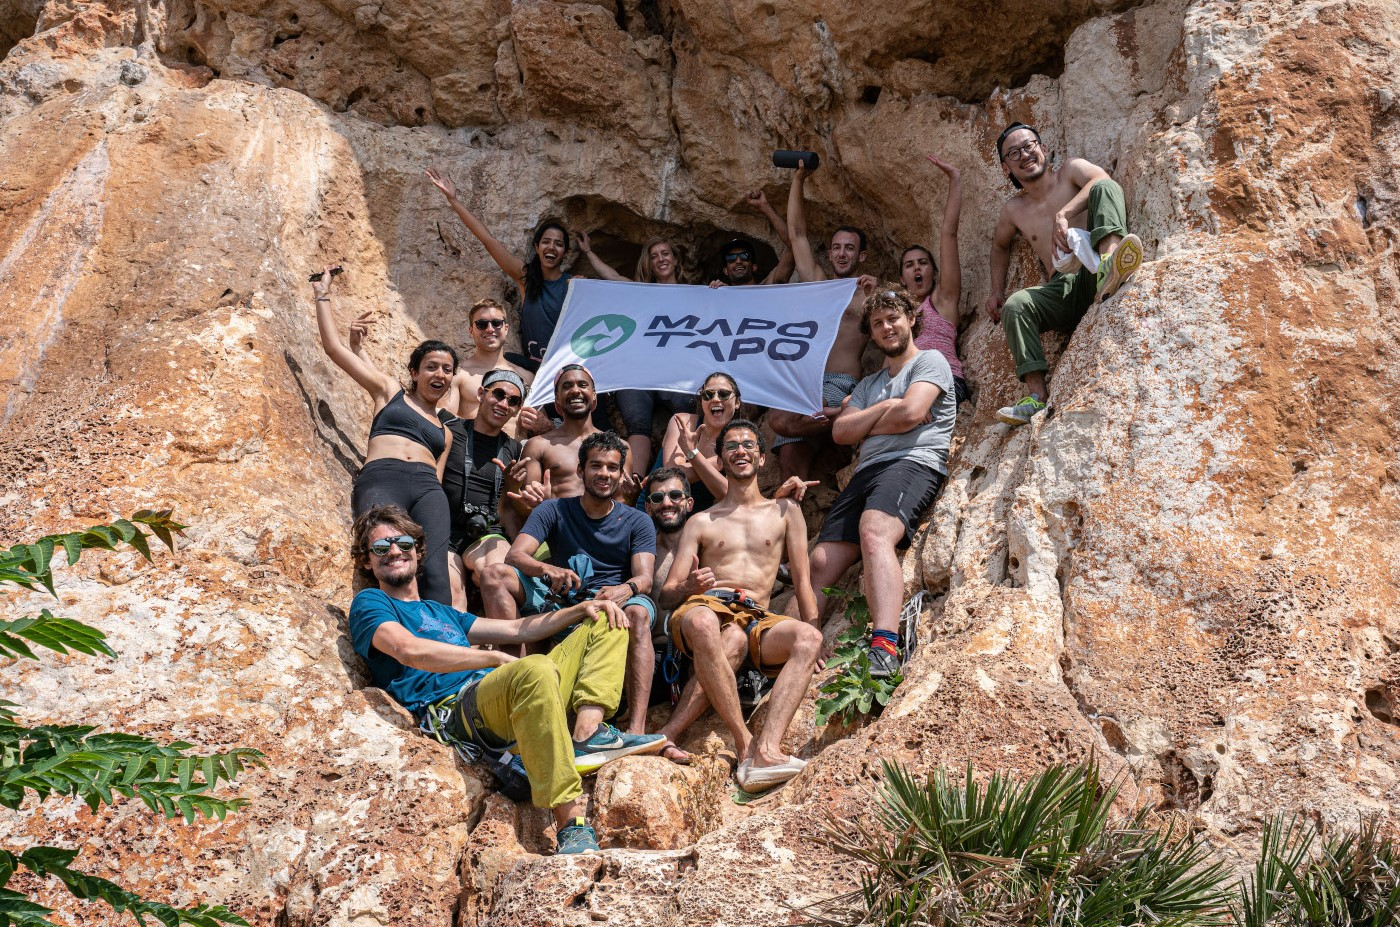 A  group of rock climbers smiling and waving at the camera while holding a  Mapo Tapo banner